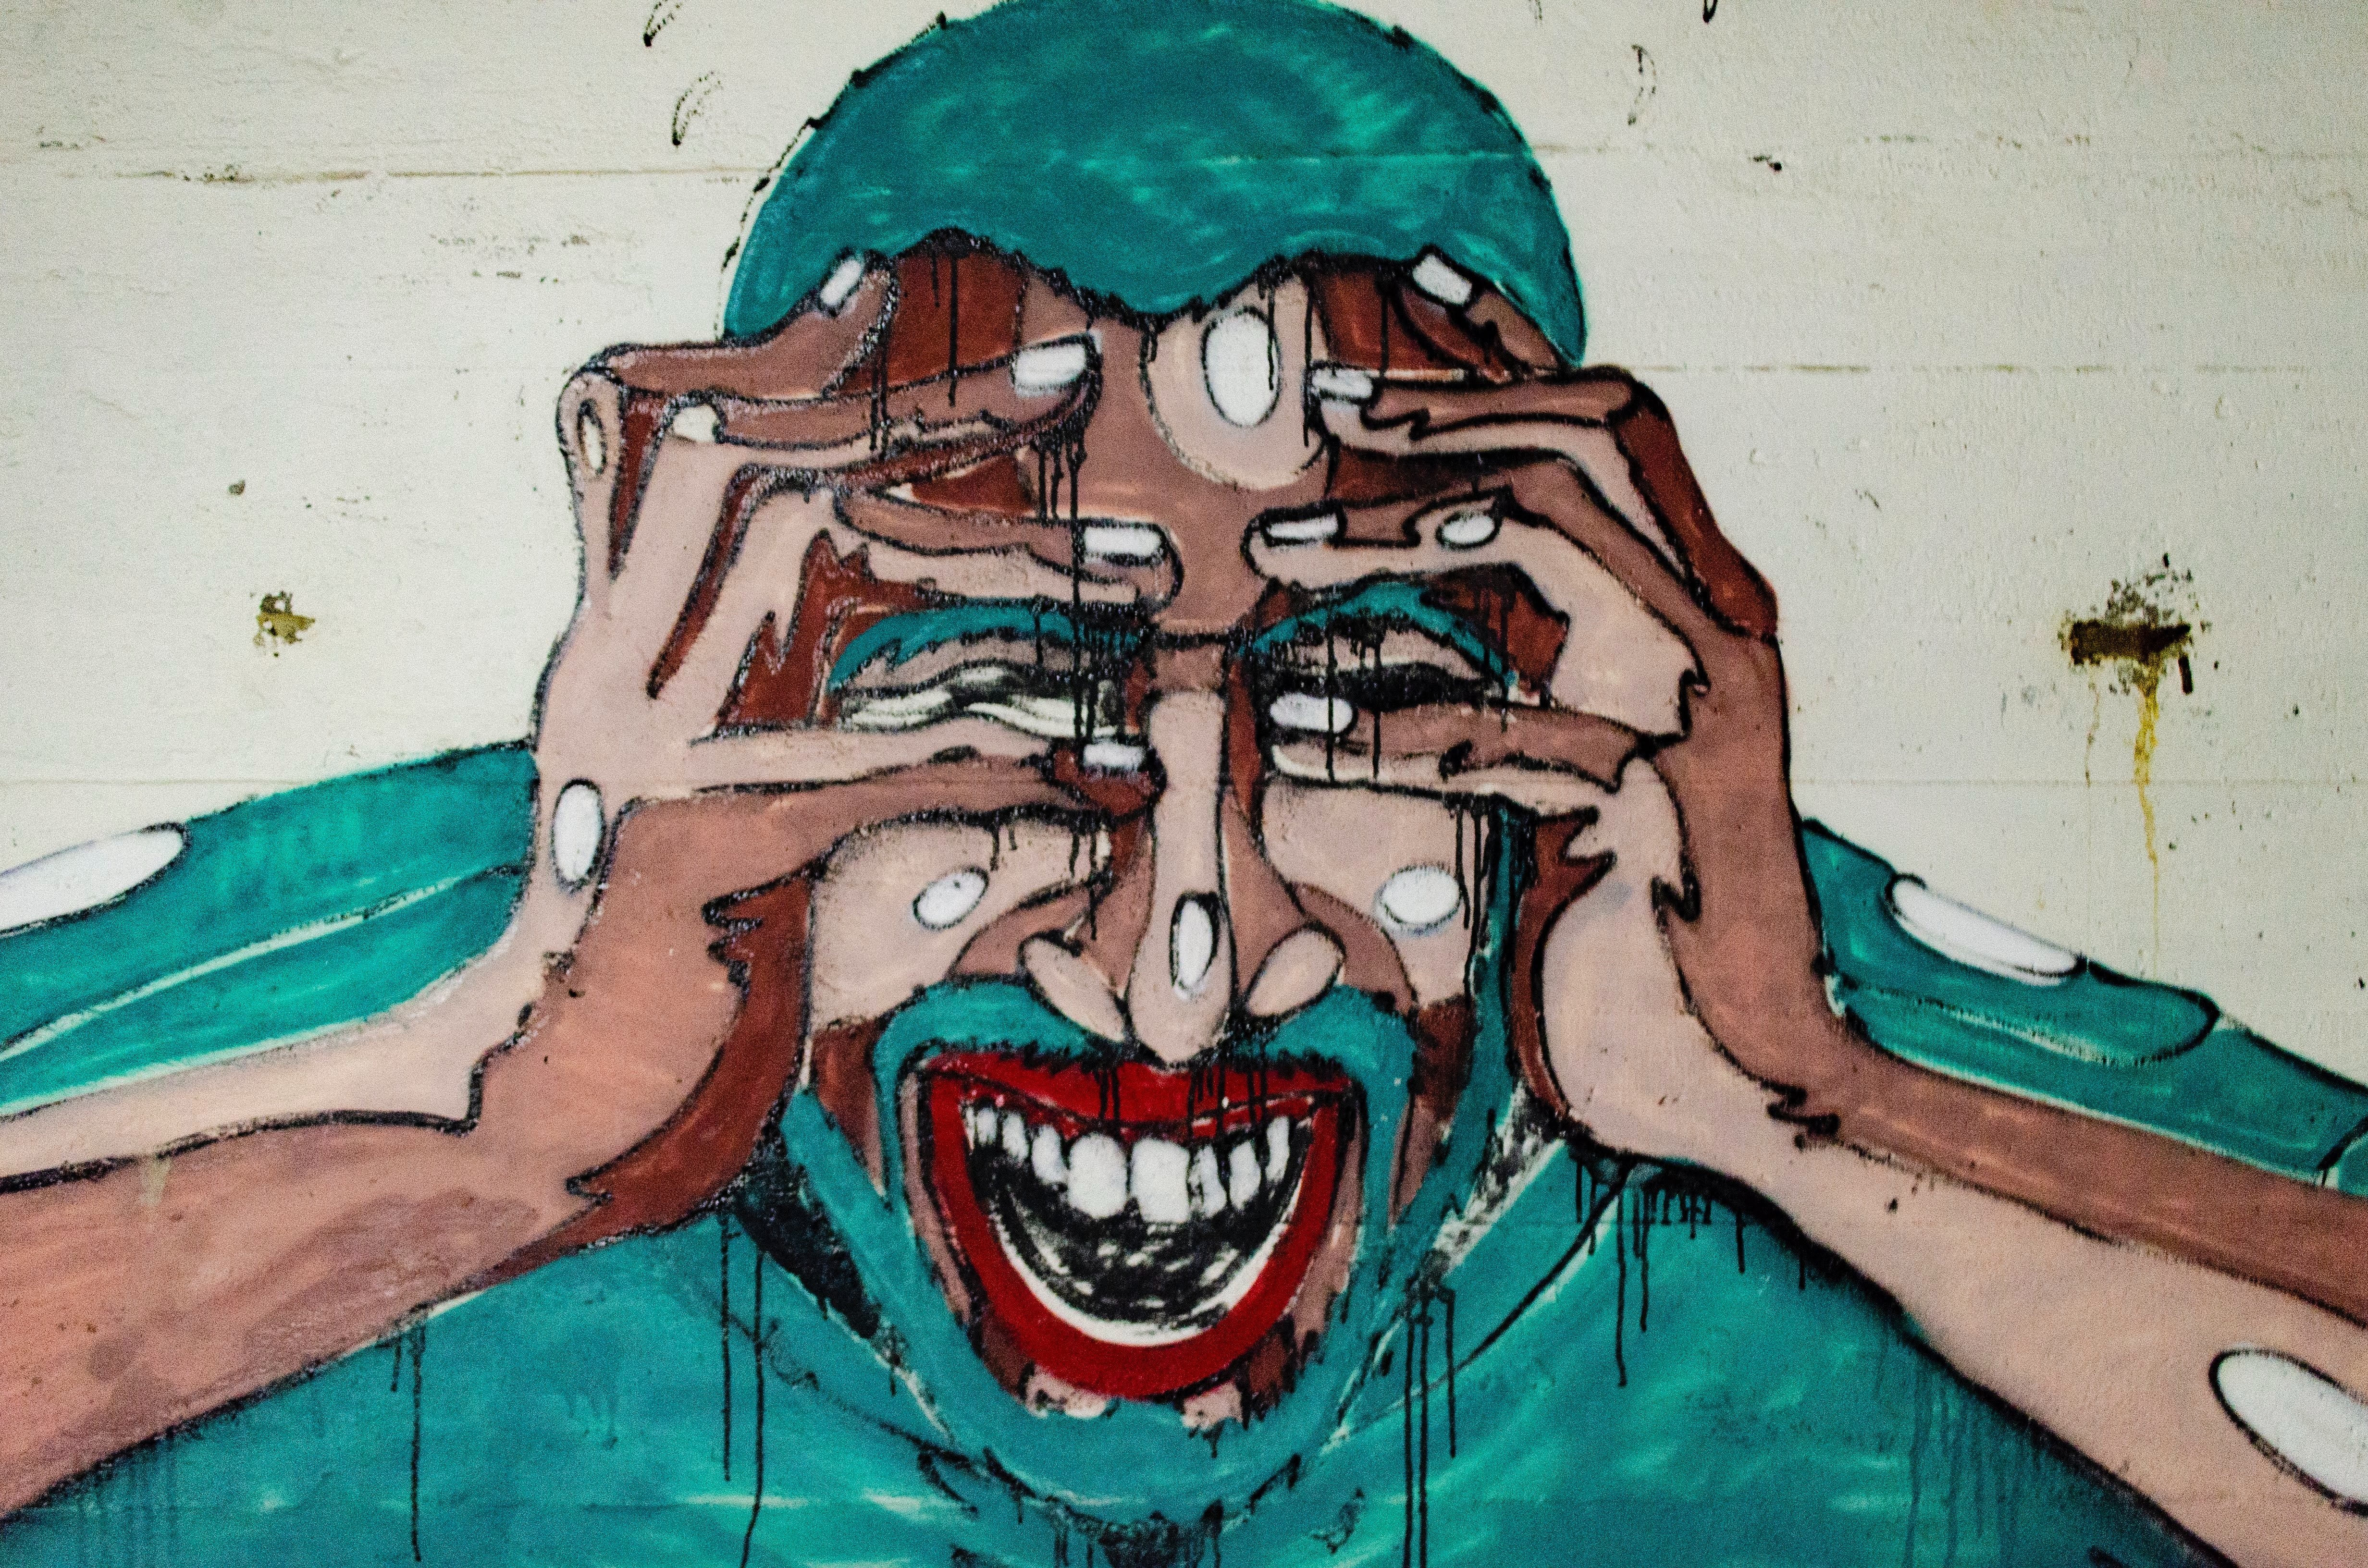 painting of man covering face with both hands